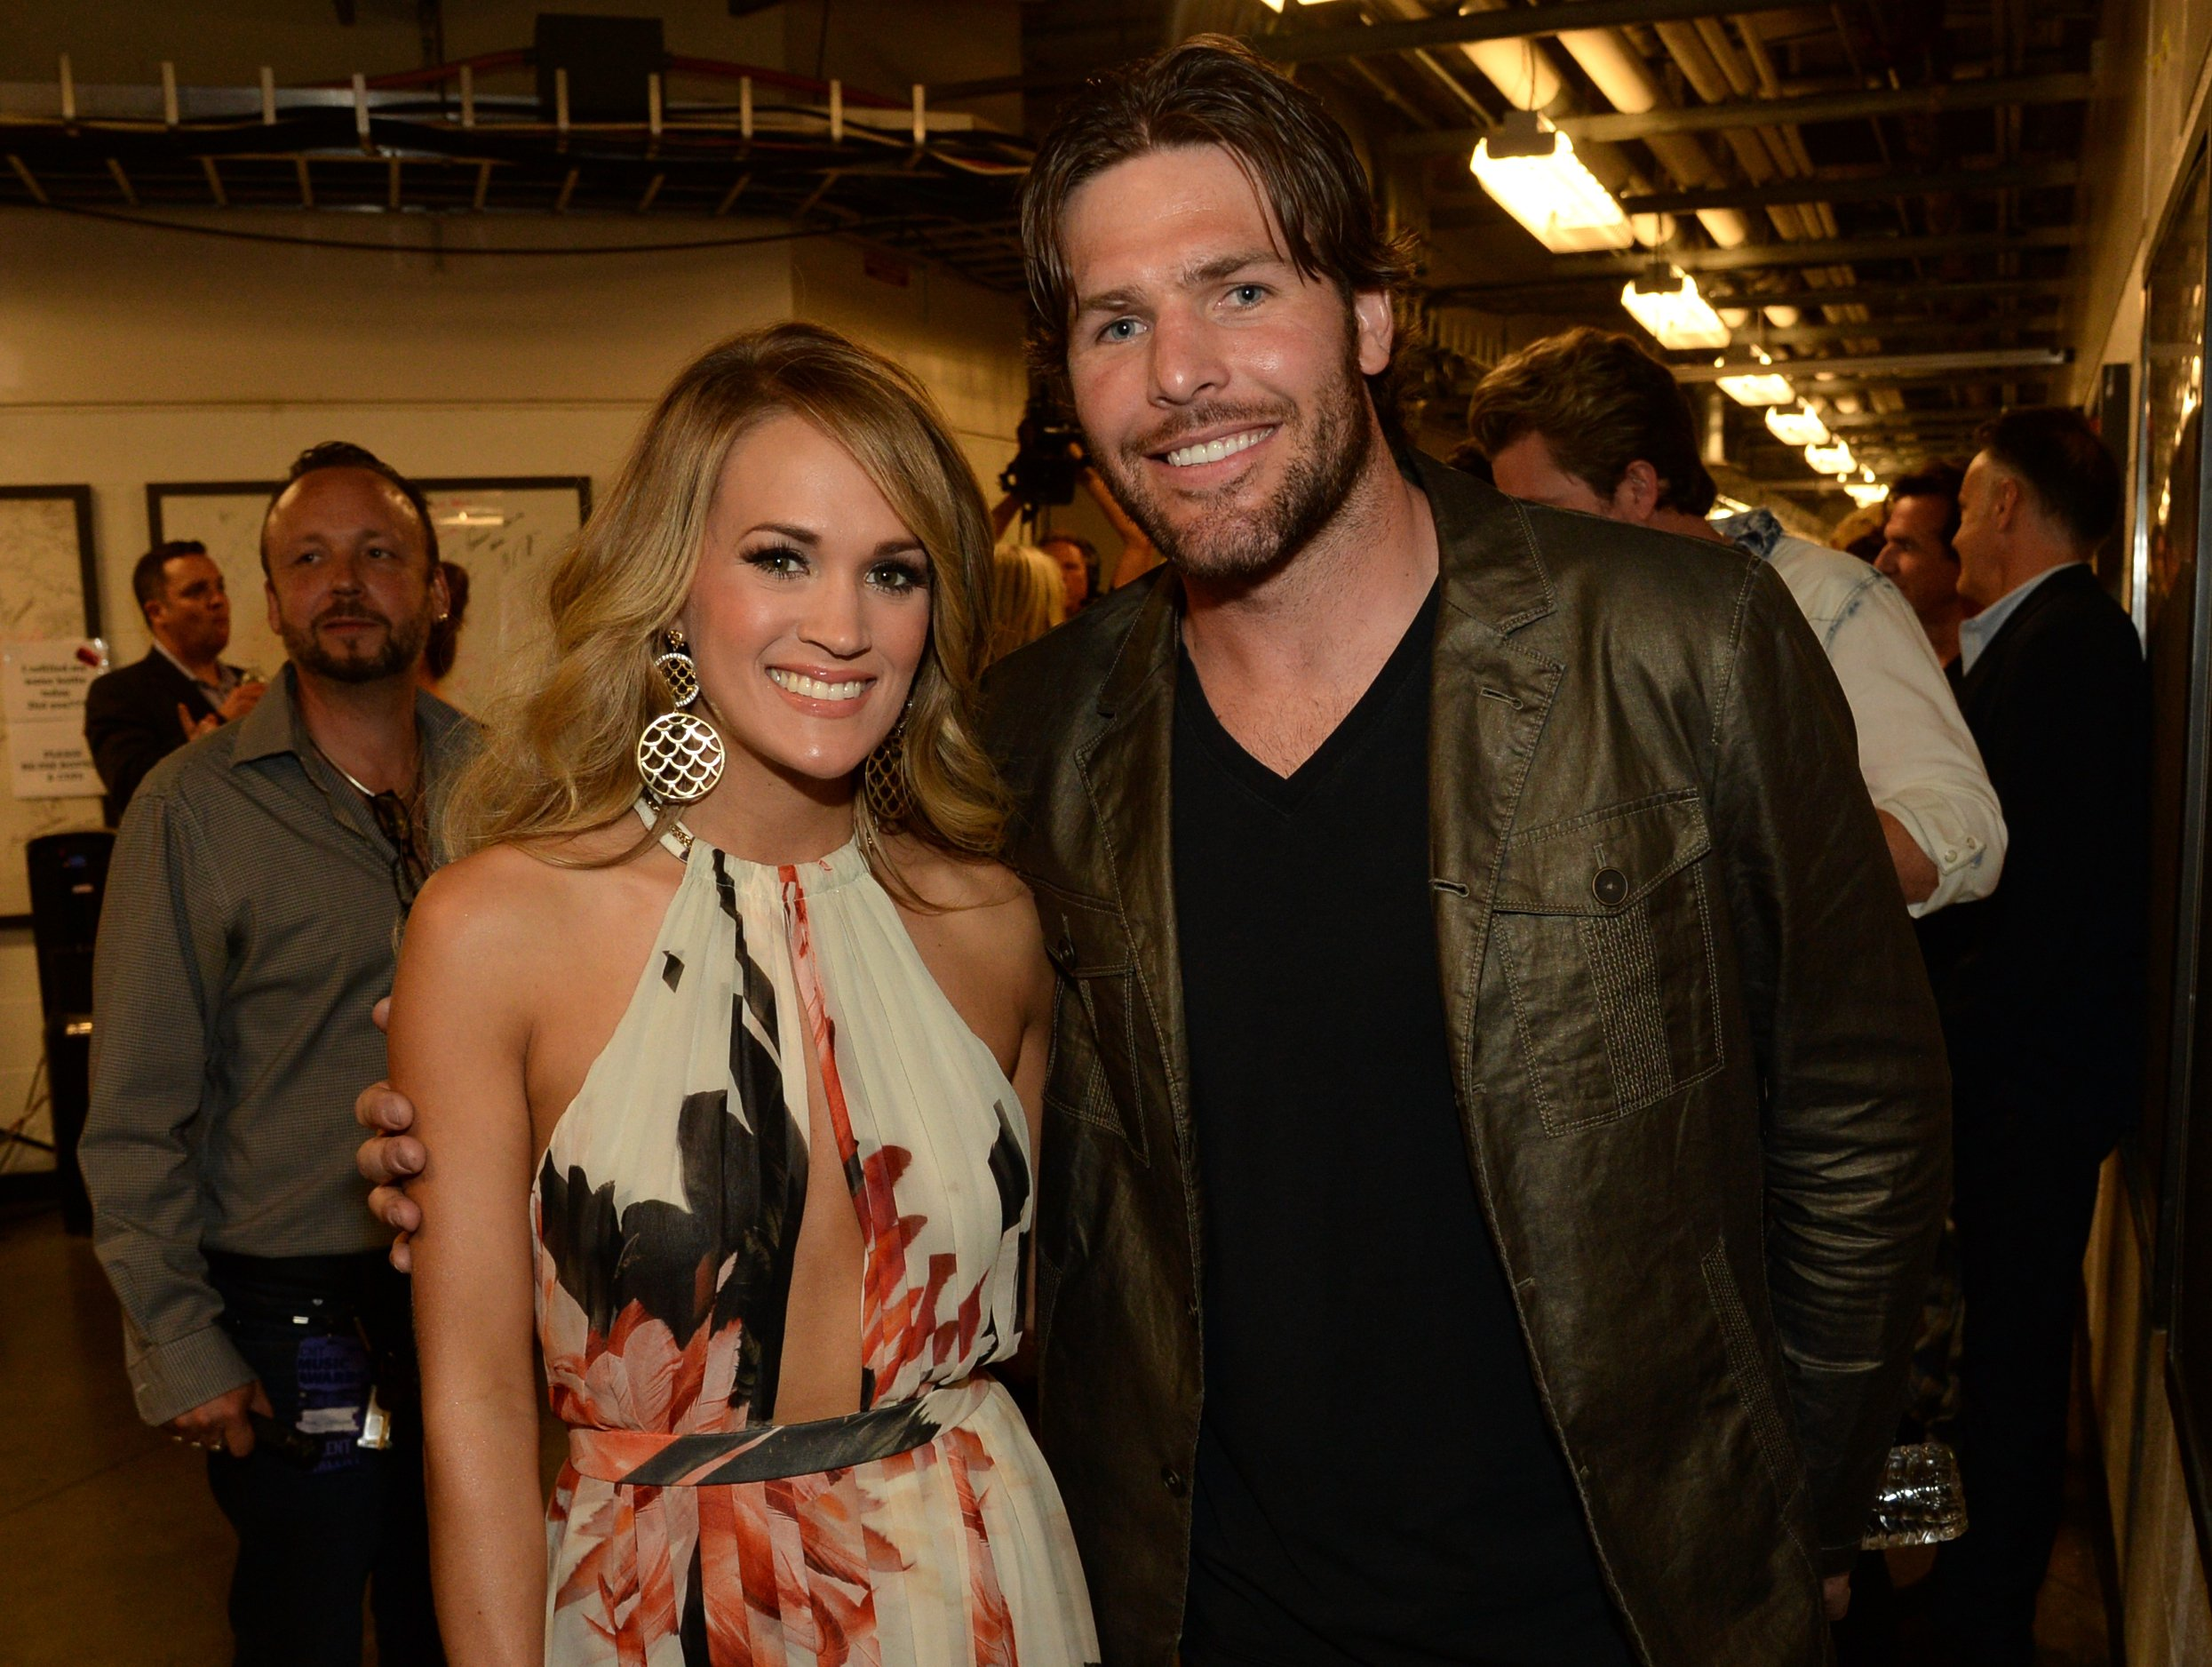 Carrie Underwood and Mike Fisher attend the 2014 CMT Music Awards on June 4, 2014, in Nashville, Tennessee. | Source: Getty Images.